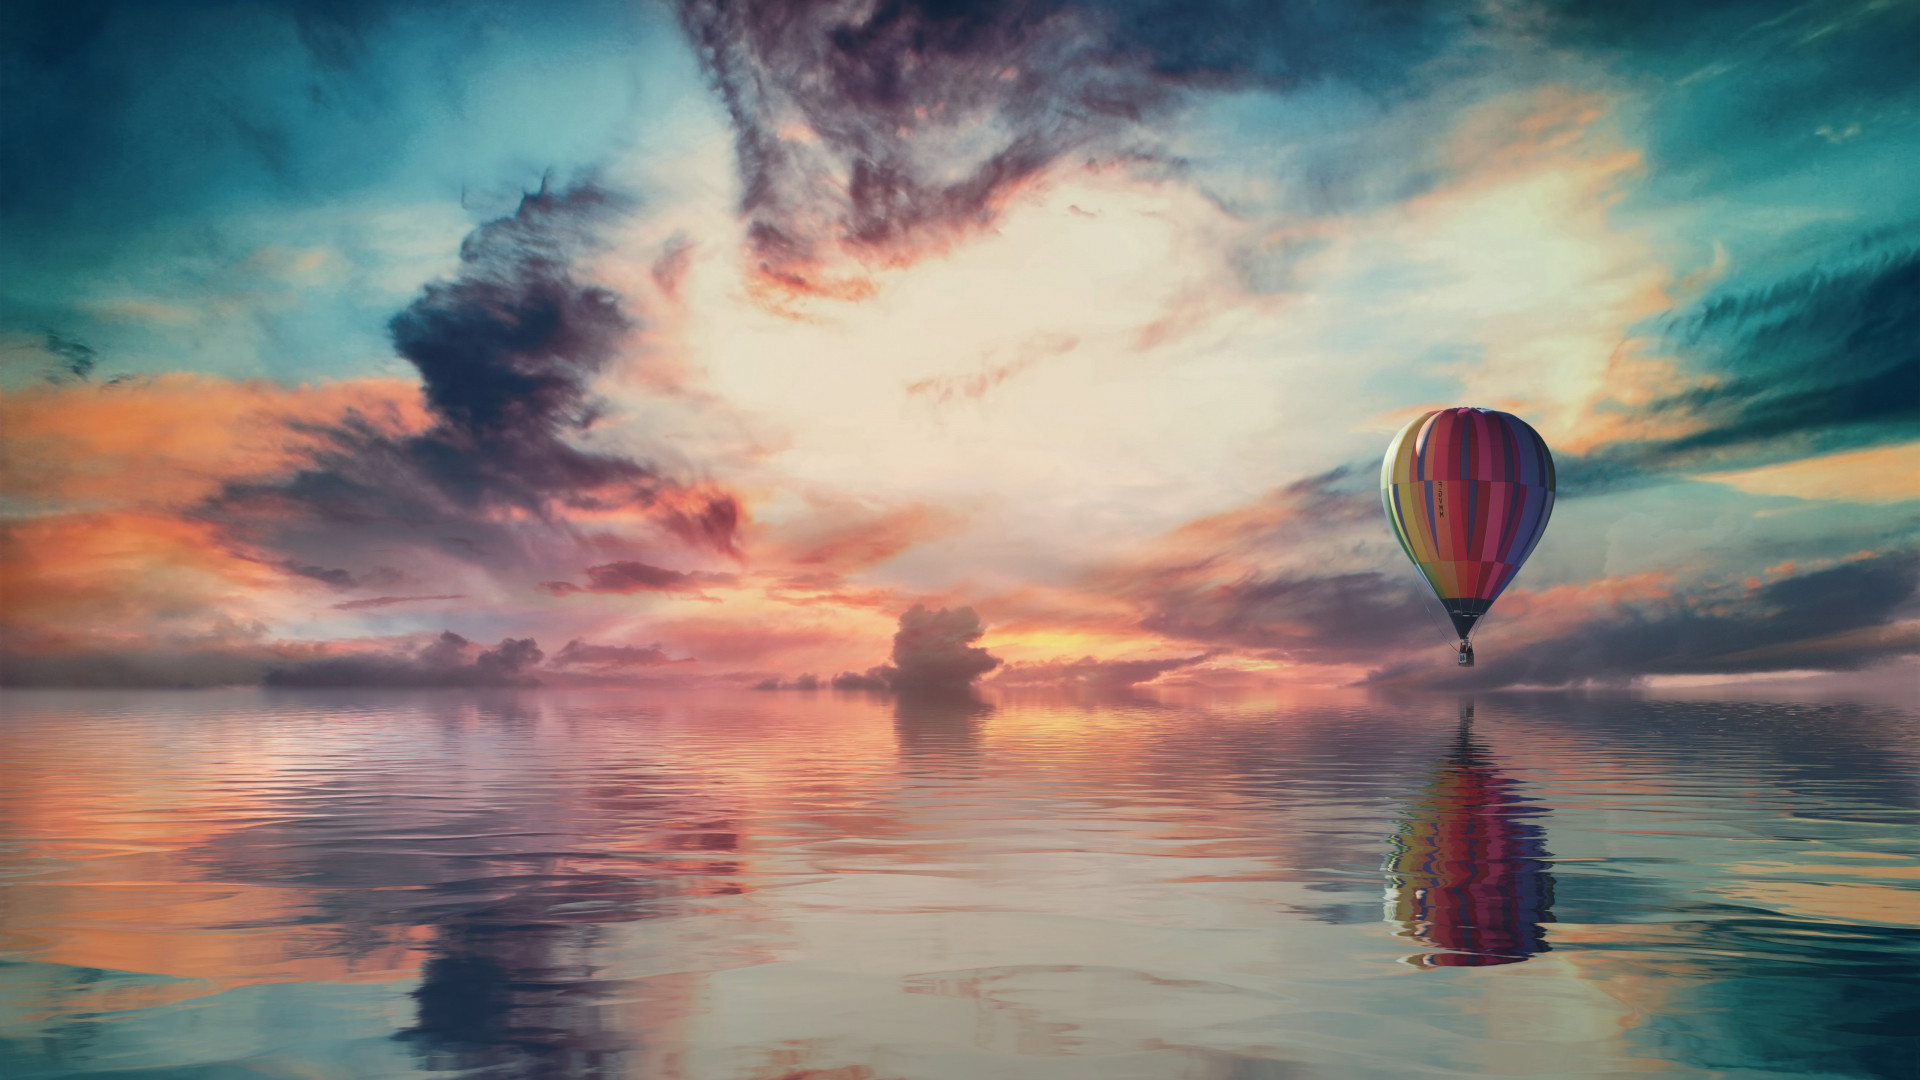 Fantasy travel with the hot air balloon wallpaper 1920x1080